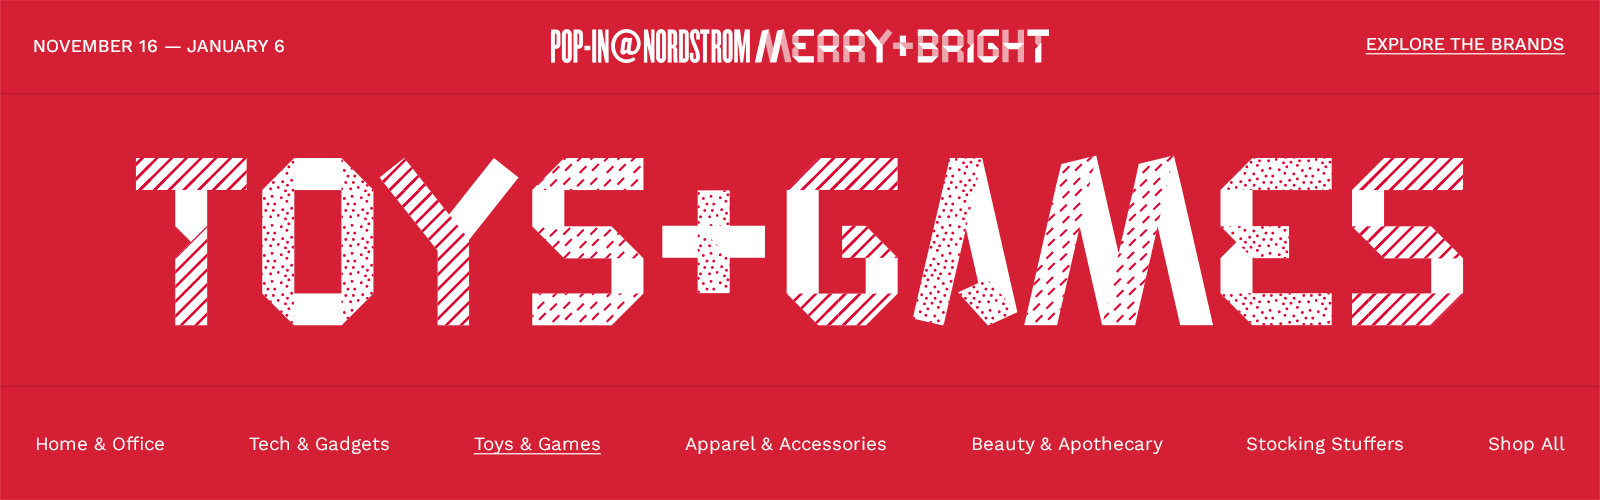 Shop toys & games. Pop-In@Nordstrom Merry+Bright. November 16 to January 6.